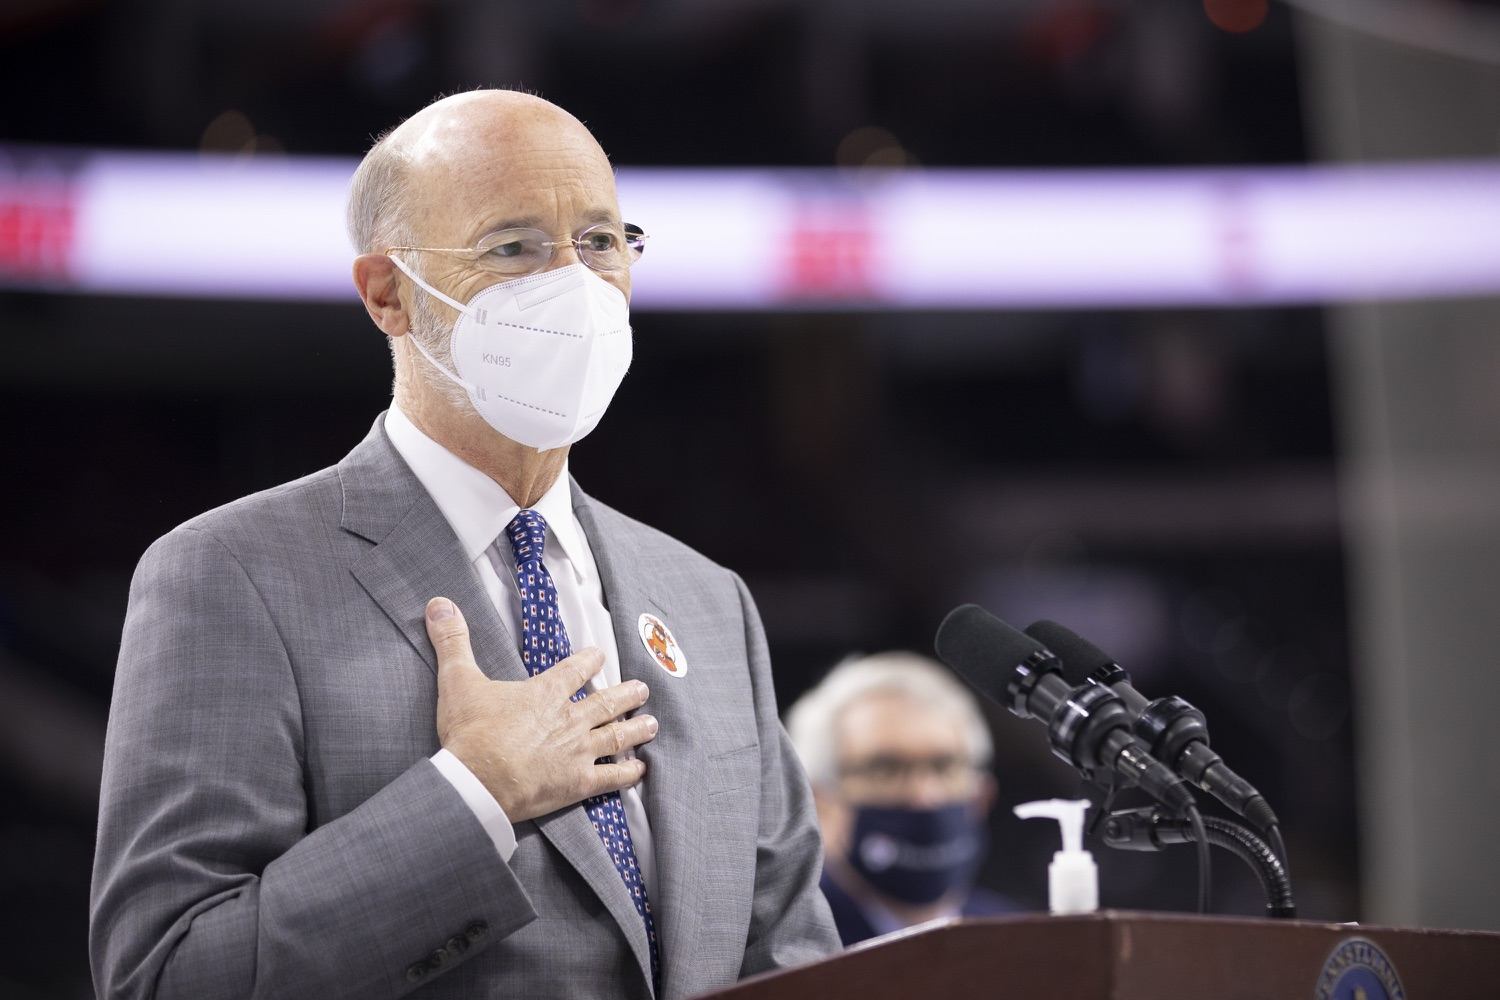 """<a href=""""https://filesource.wostreaming.net/commonwealthofpa/photo/18727_gov_vaccines_dz_004.JPG"""" target=""""_blank"""">⇣Download Photo<br></a>Pennsylvania Governor Tom Wolf speaking with the press.   Governor Tom Wolf today visited the Philadelphia Flyers organization at the Wells Fargo Center in Philadelphia to discuss COVID-19 vaccine efforts in Pennsylvania. The Flyers recently launched a comprehensive COVID-19 vaccine campaign, Take Your Shot, encouraging Pennsylvanians to get vaccinated.  Philadelphia, PA  MAY 3, 2021"""